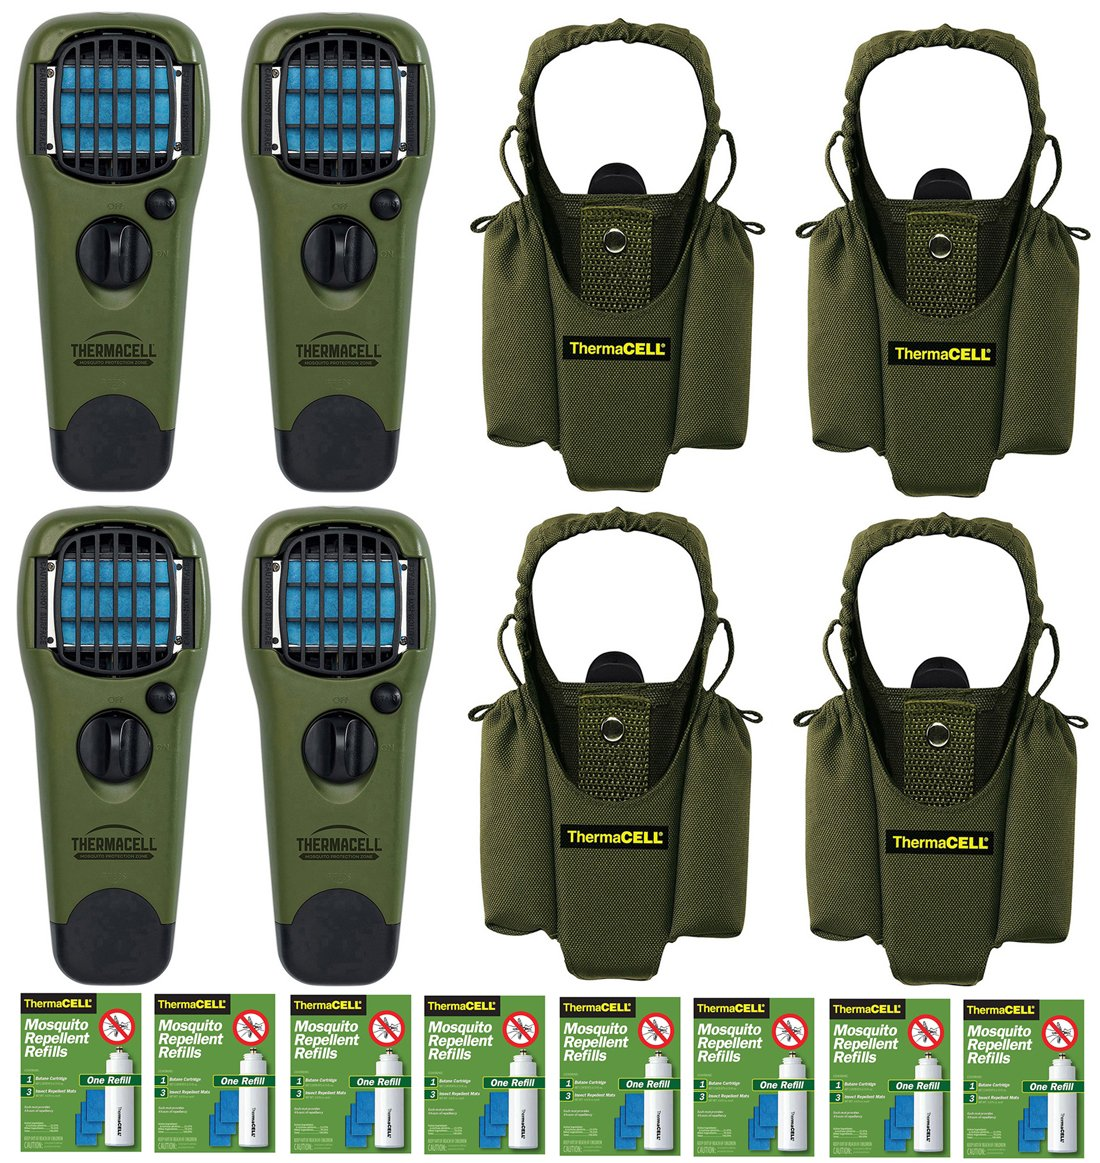 Thermacell Family Camper's Kit : 4 Mosquito Repellent Appliances (Olive), 4 Holsters, 8 Refill Packs by Thermacell (Image #1)